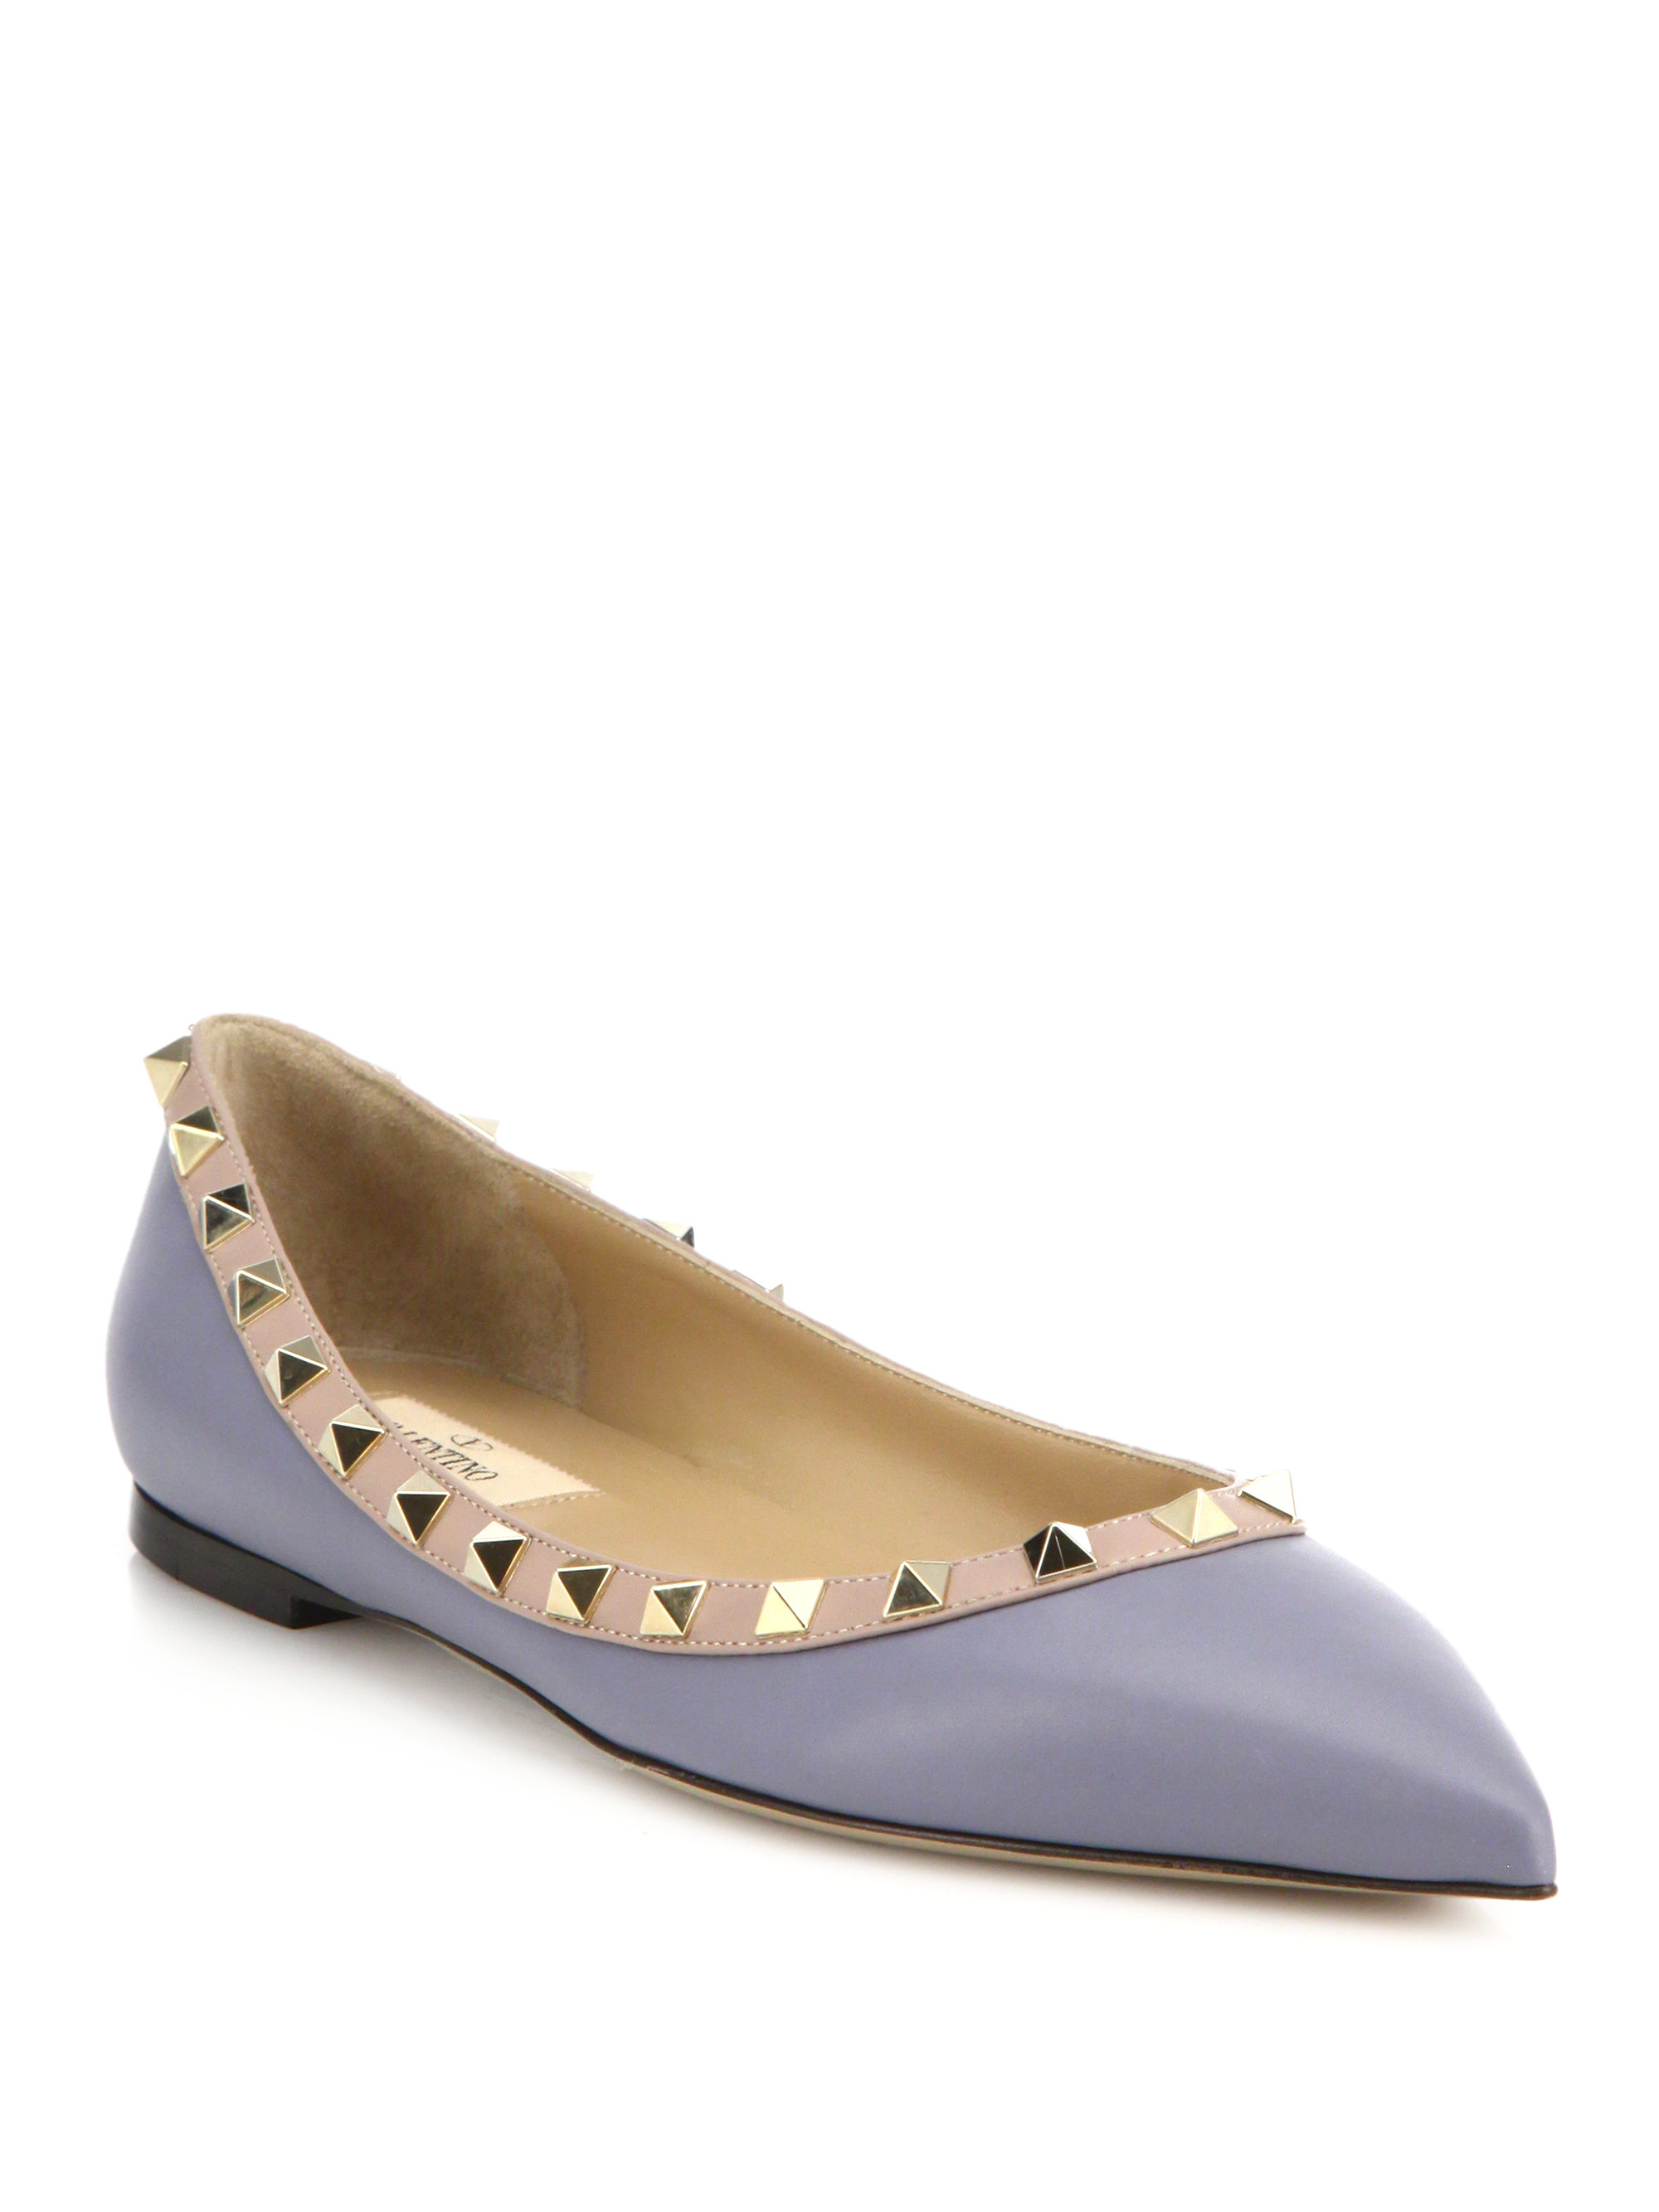 Lyst Valentino Rockstud Two Tone Leather Flats In Gray